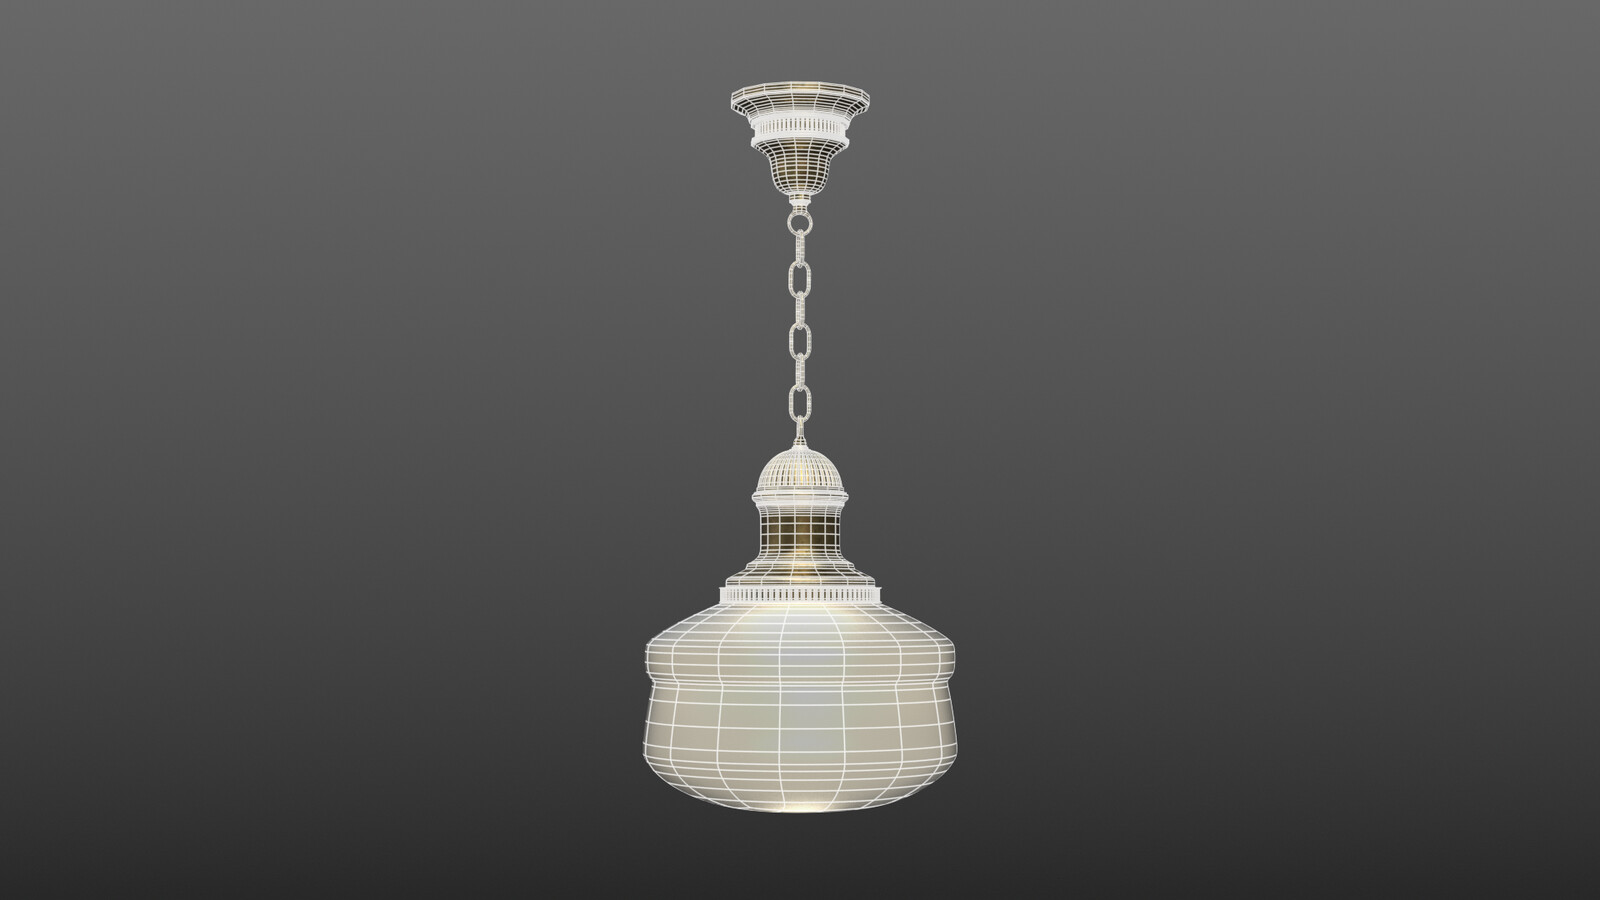 Ceiling lamp - Wireframe